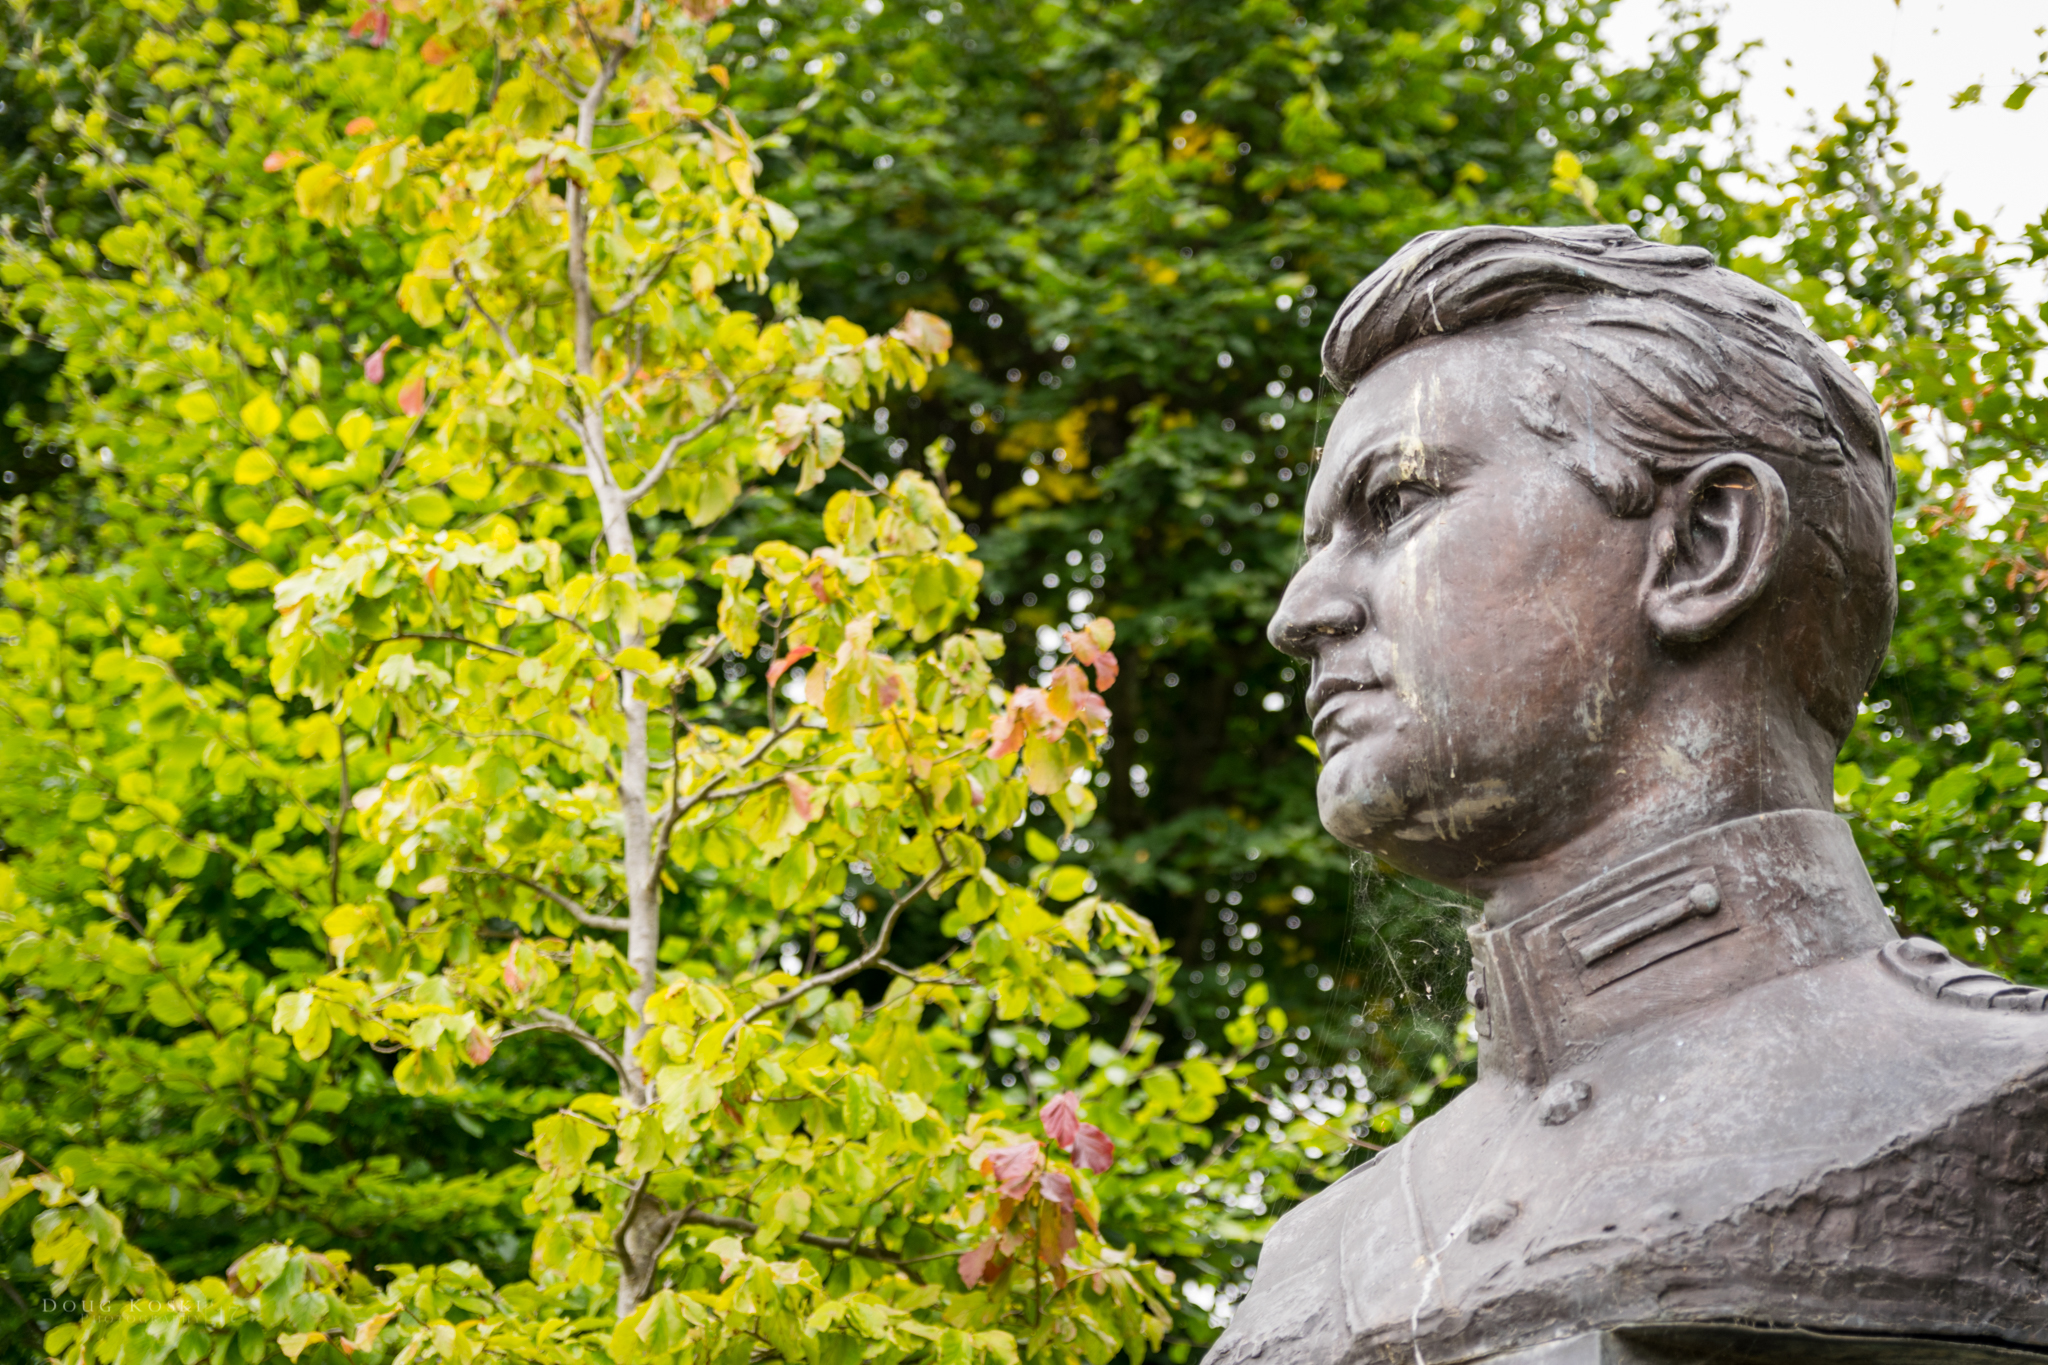 Michael Collins - It was suggested we remember to genuflect when getting close to this statue.